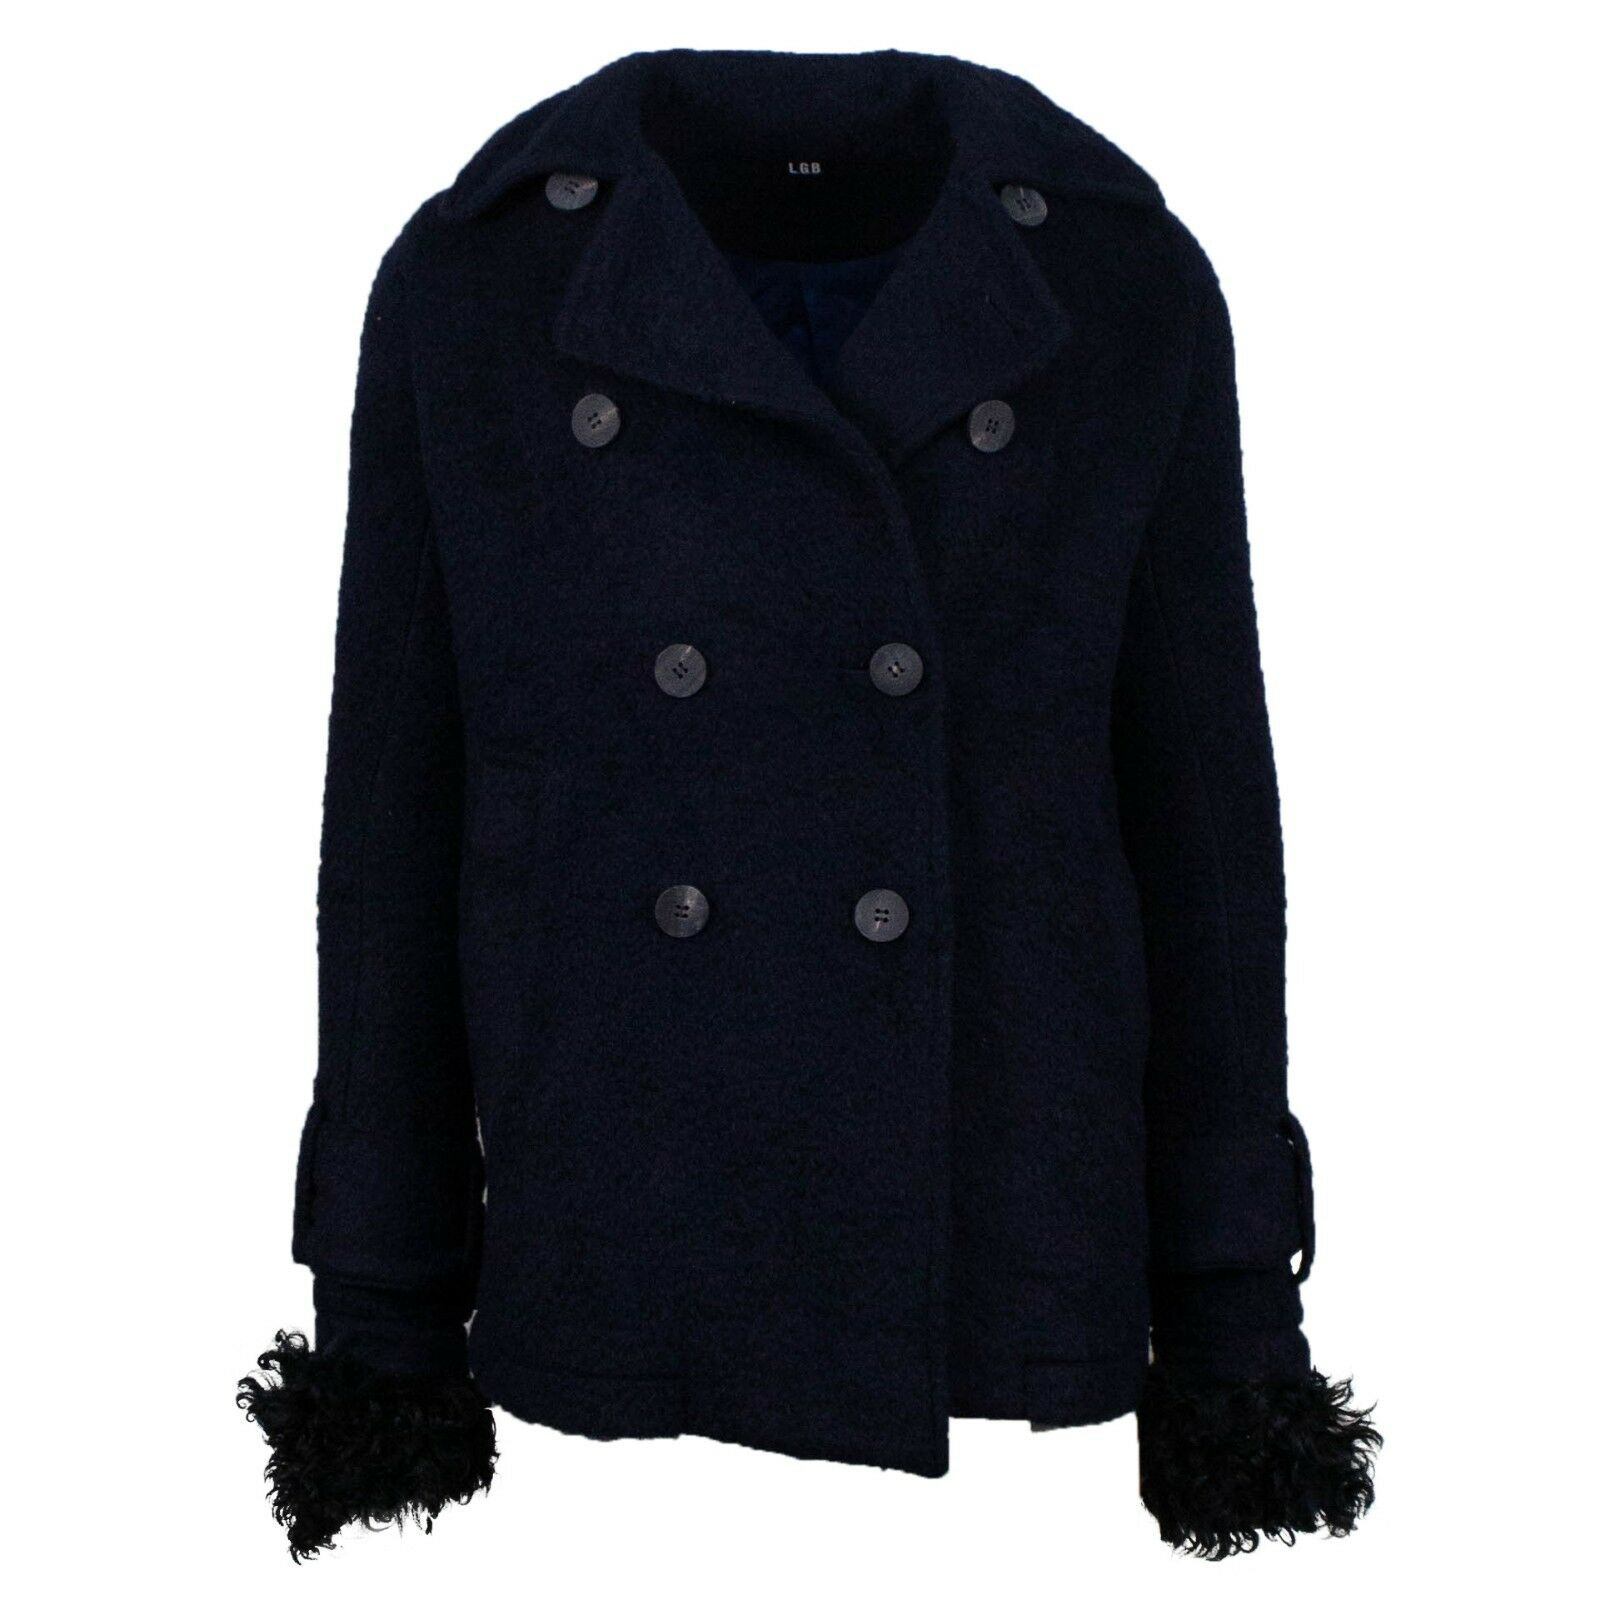 NWT L.G.B. Navy bluee Textured Double Breasted Cotton Blend Pea Coat Size 1  2030